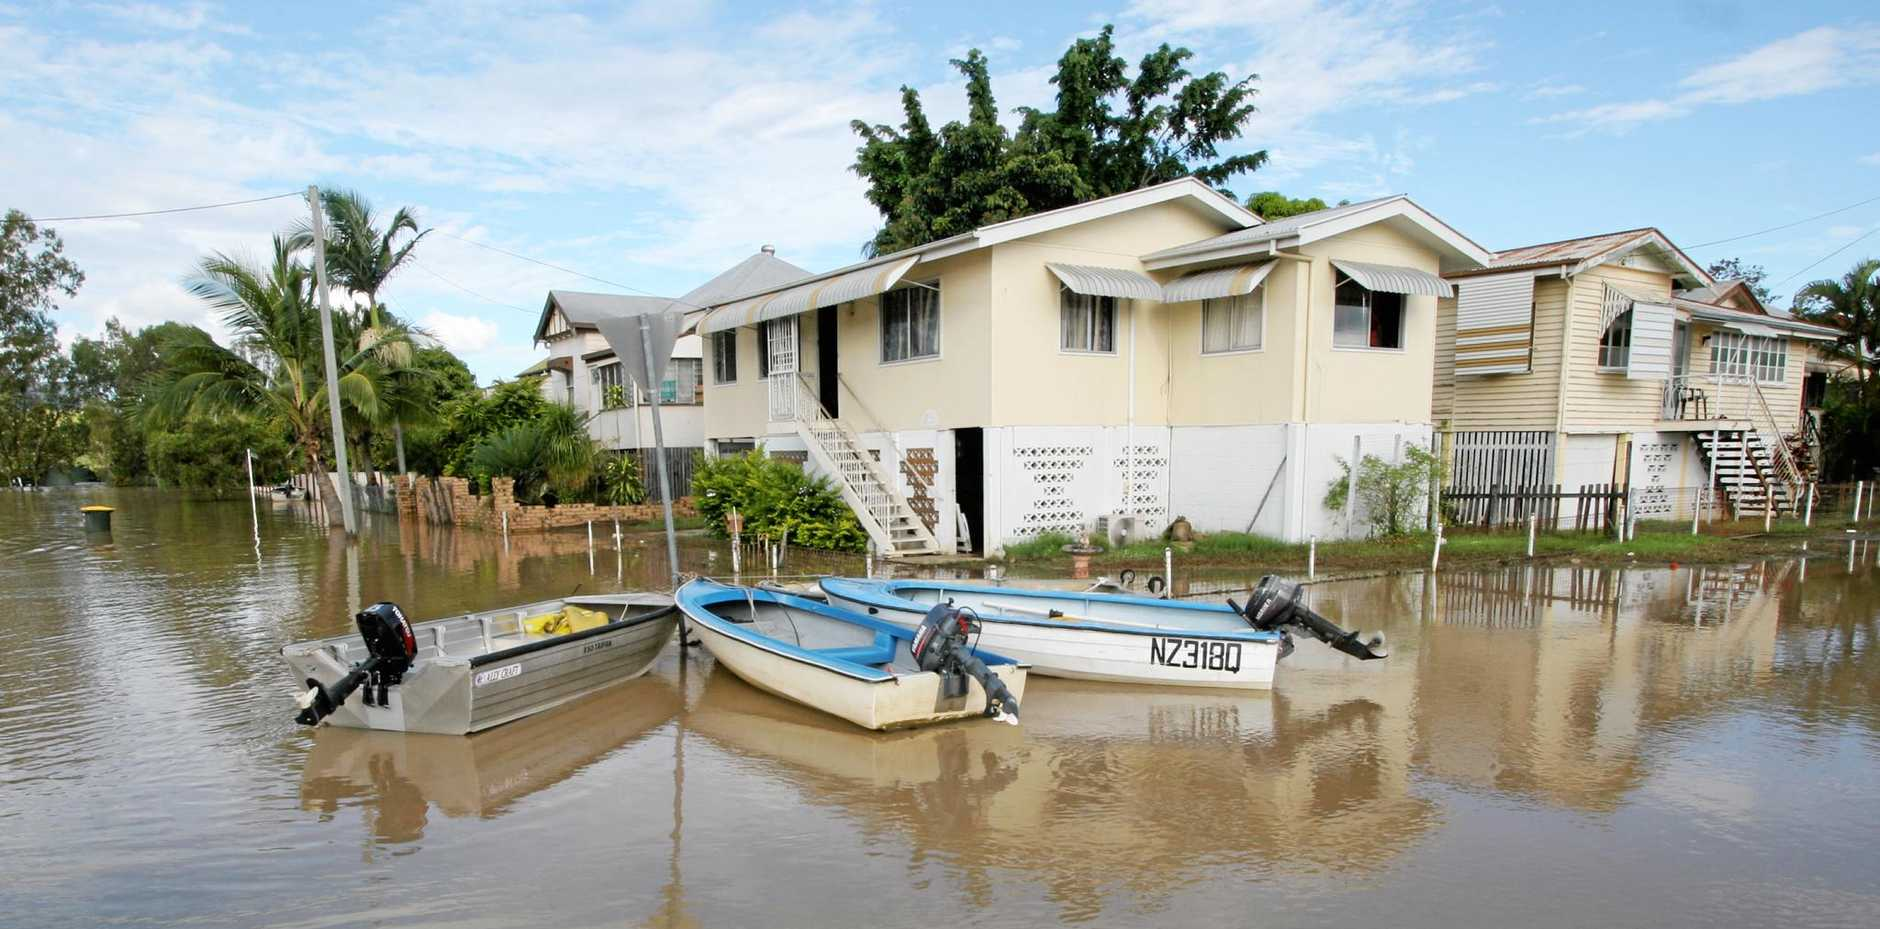 2011 PHOTO: Tinies are tied to a street sign in Depot Hill as residents continue to use small boats to get to their homes still cut off from the rest of Rockhampton by flood waters.